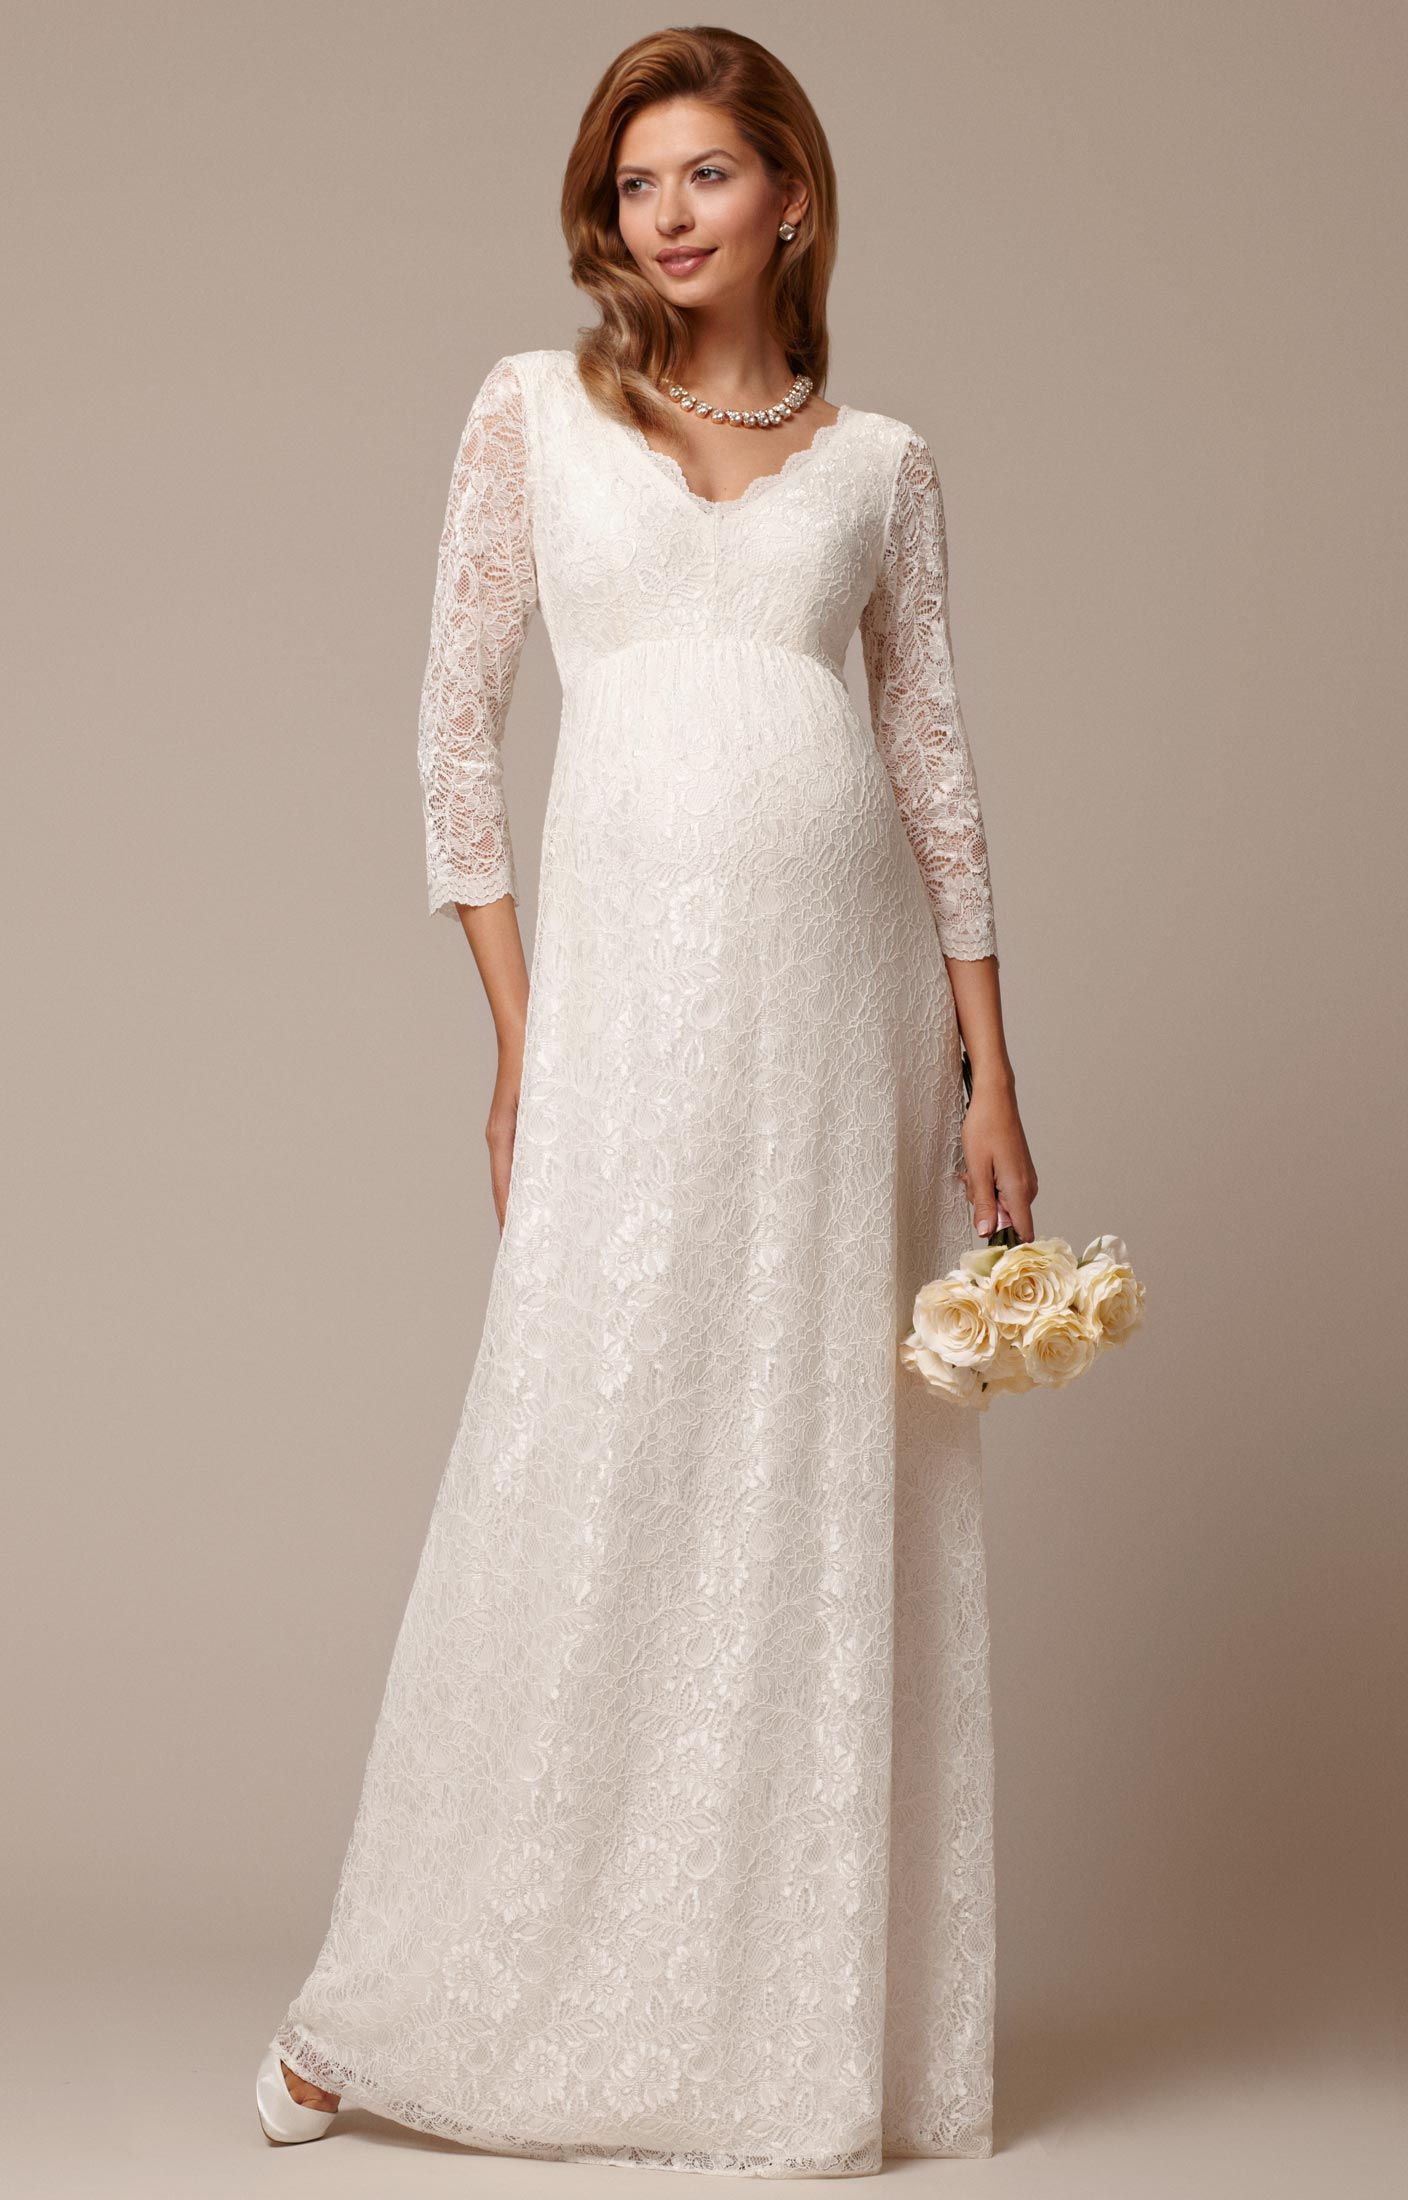 5f7ad3203f57 Chloe Lace Maternity Wedding Gown Ivory - Maternity Wedding Dresses,  Evening Wear and Party Clothes by Tiffany Rose US